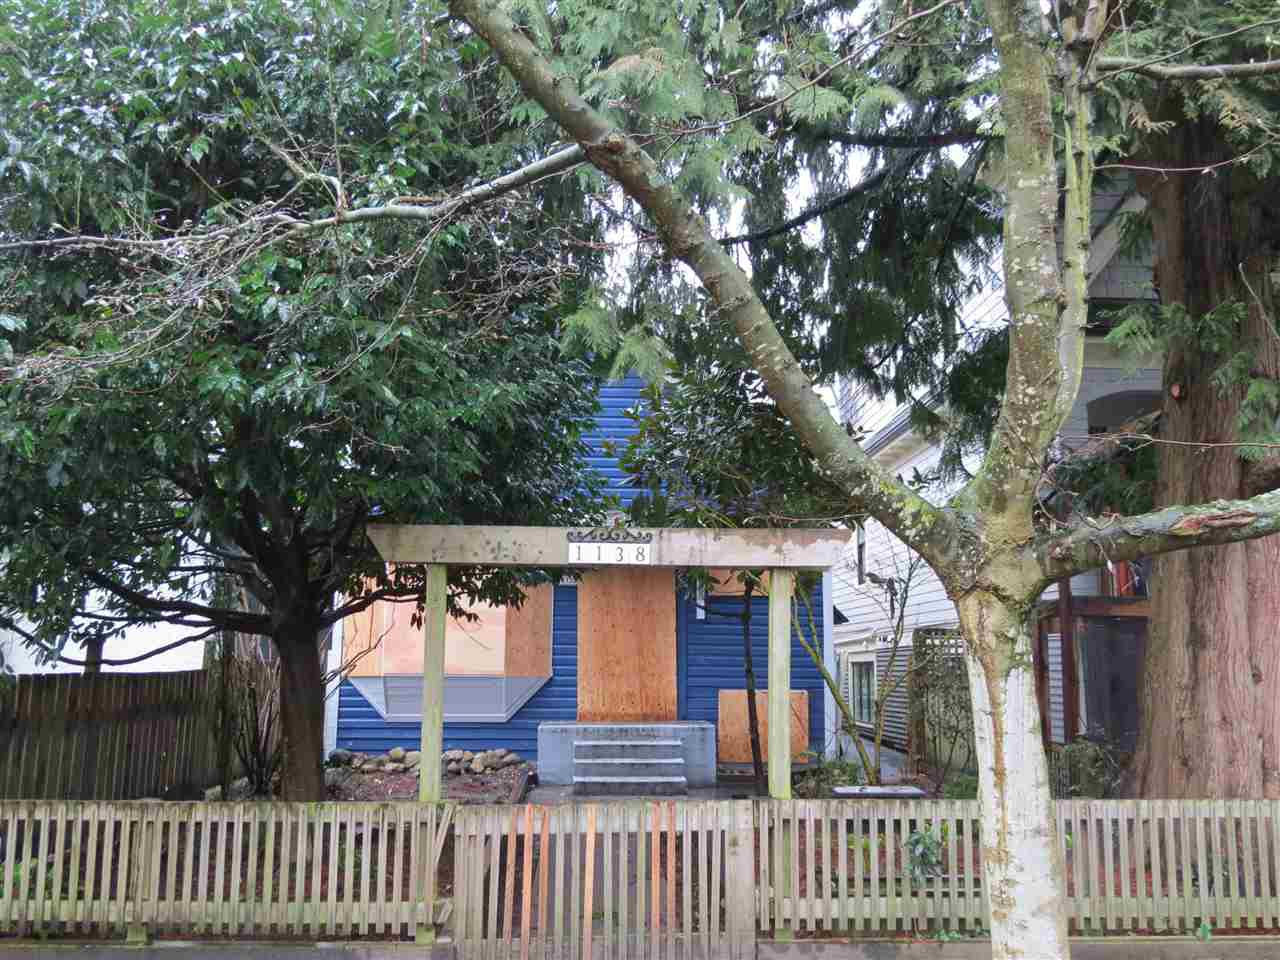 Main Photo: 1138 LILY Street in Vancouver: Grandview VE House for sale (Vancouver East)  : MLS®# R2035190